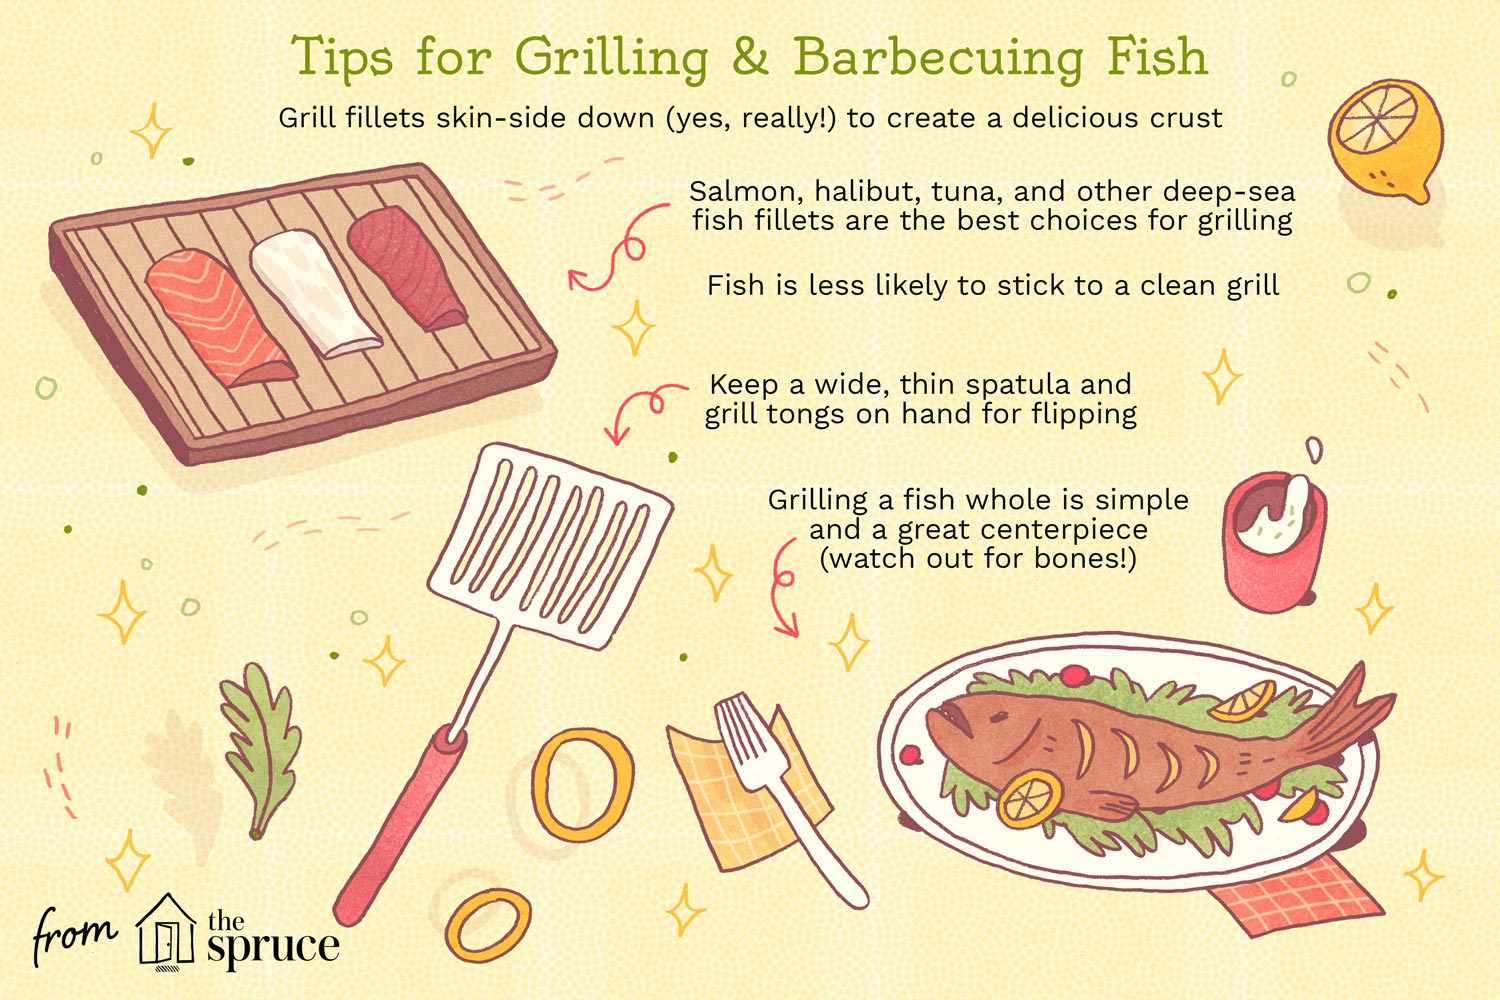 tips for grilling and barbecuing fish